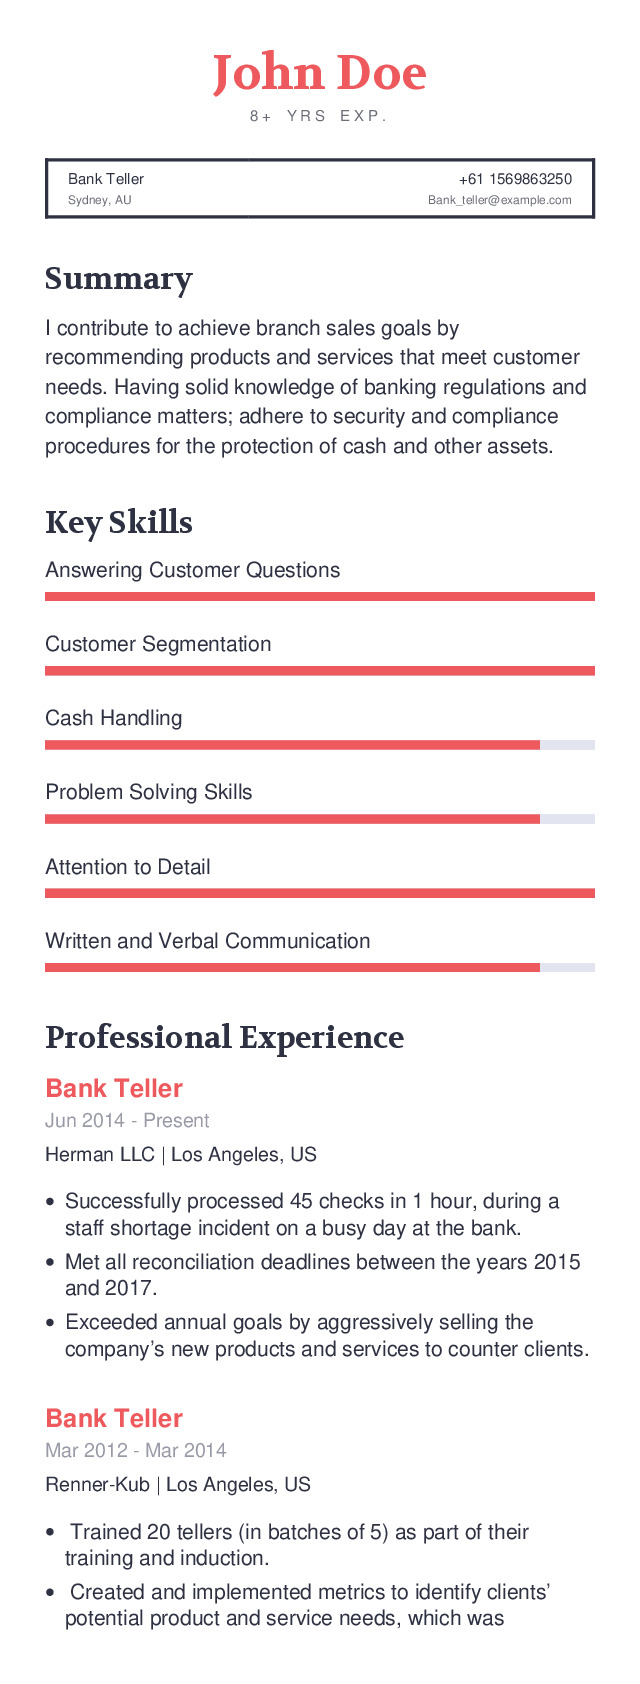 Bank Teller Mobile Resume Example